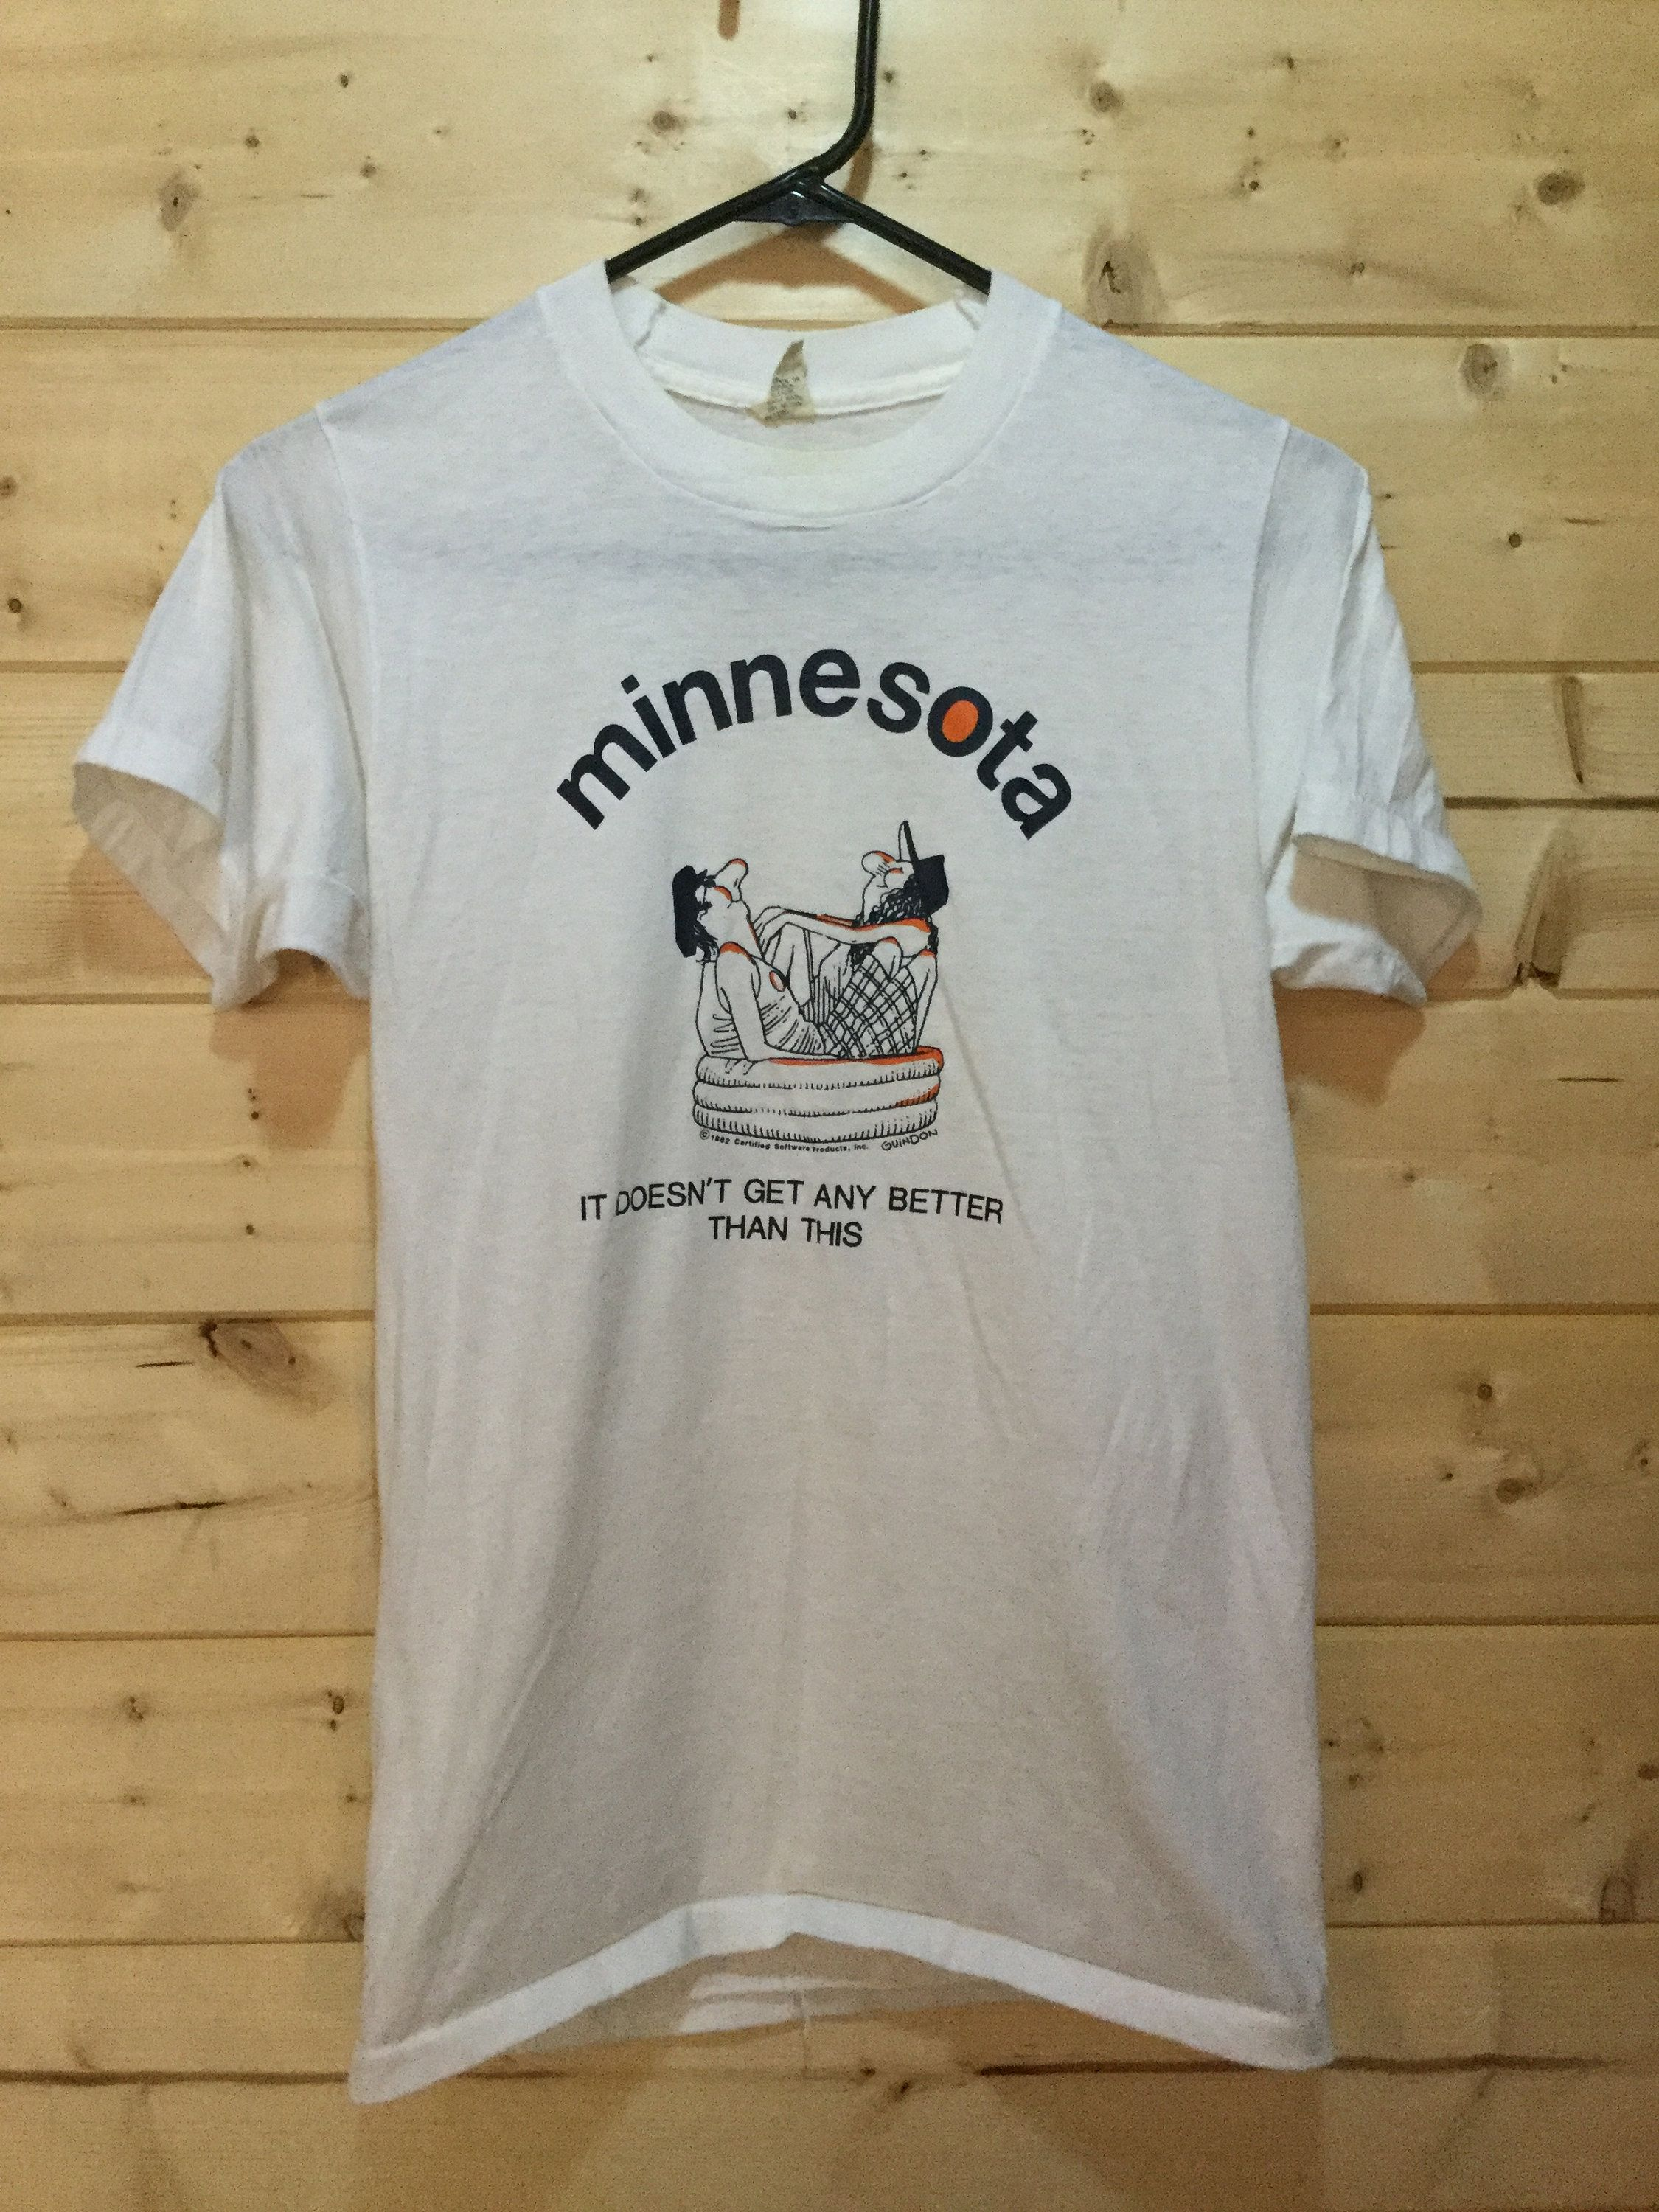 96959feff93 Vintage 1980 s Minnesota 50 50 Cartoon Shirt by 413productions on Etsy